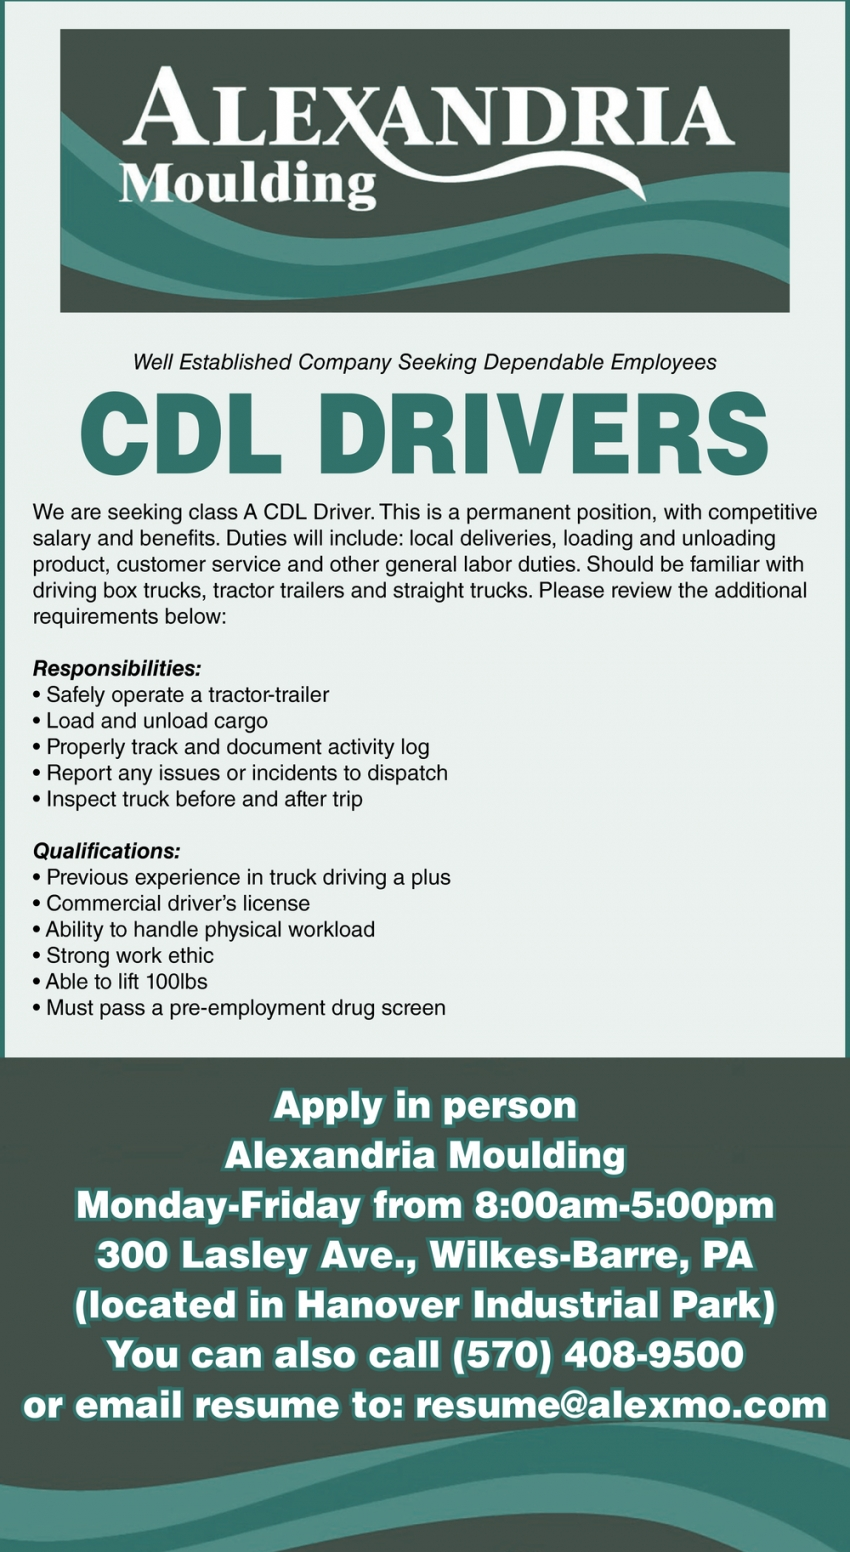 CDL Driver, Alexandria Moulding, Wilkes Barre, PA